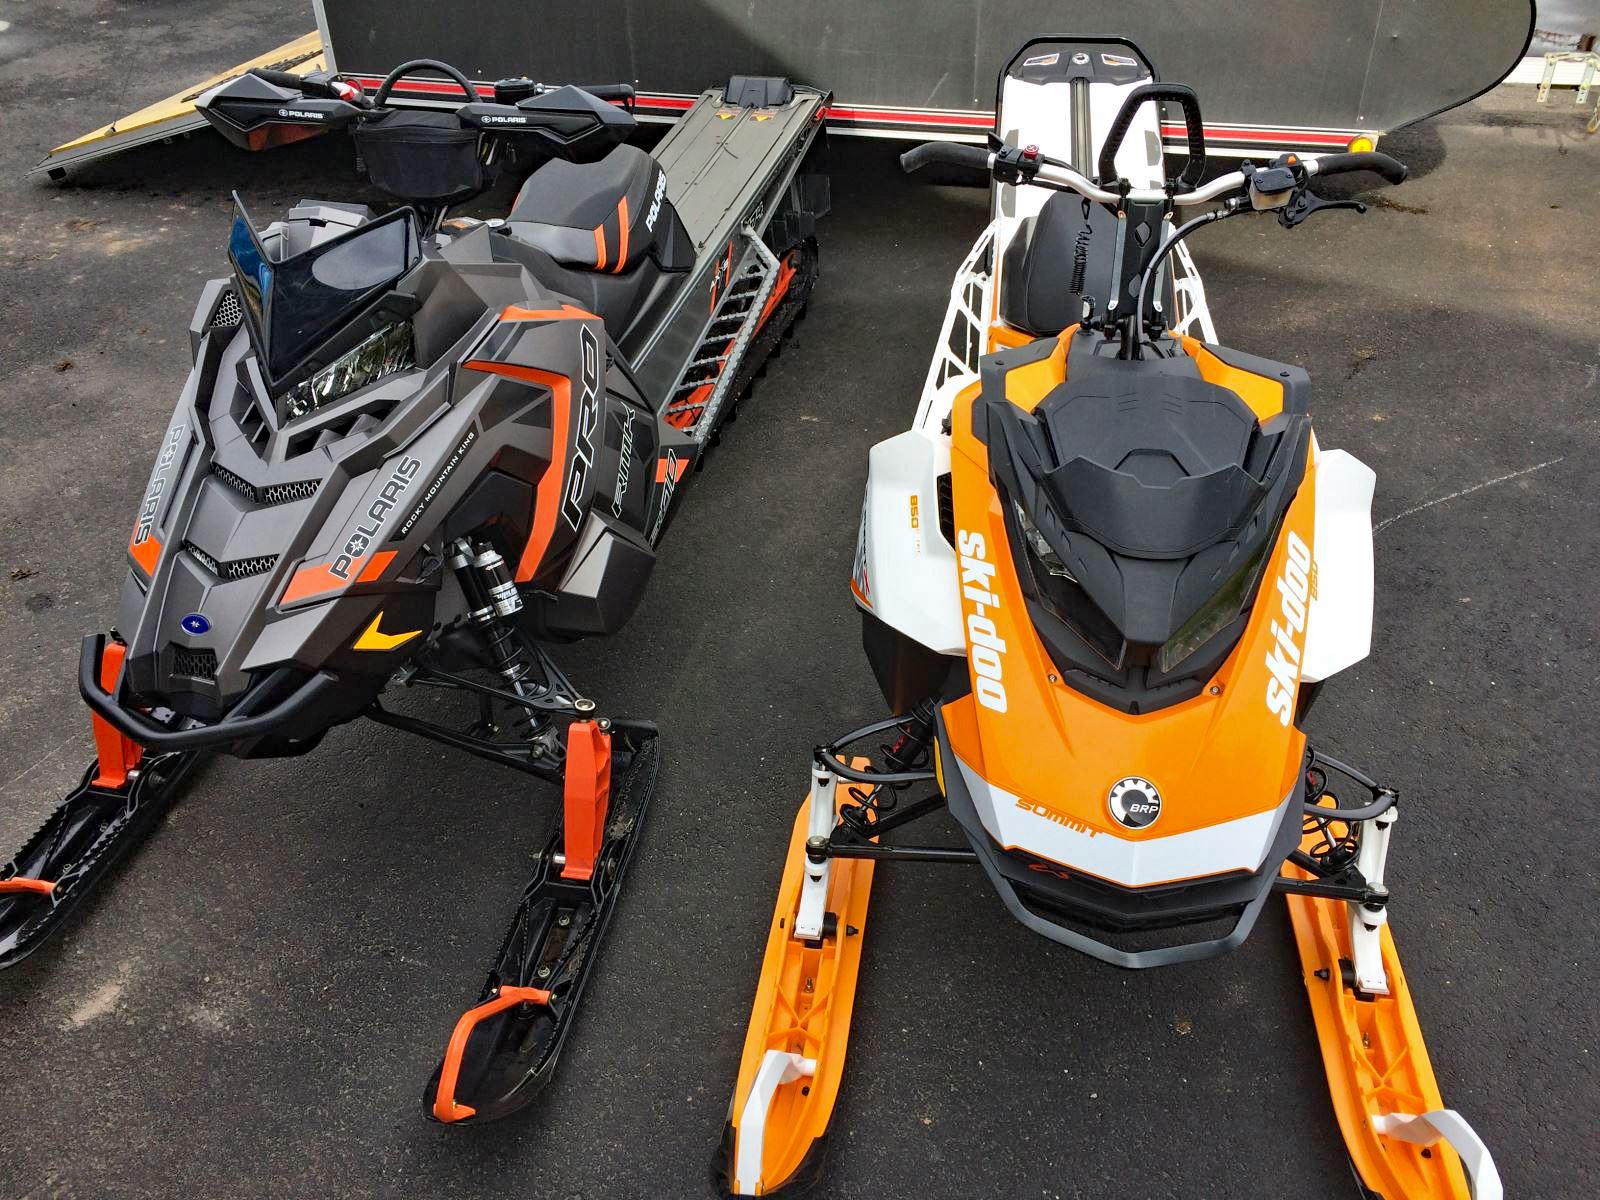 We Weigh the 17s: Ski-Doo Summit X 850 vs. Polaris 800 Pro-RMK 174 LE |  SnoWest Magazine